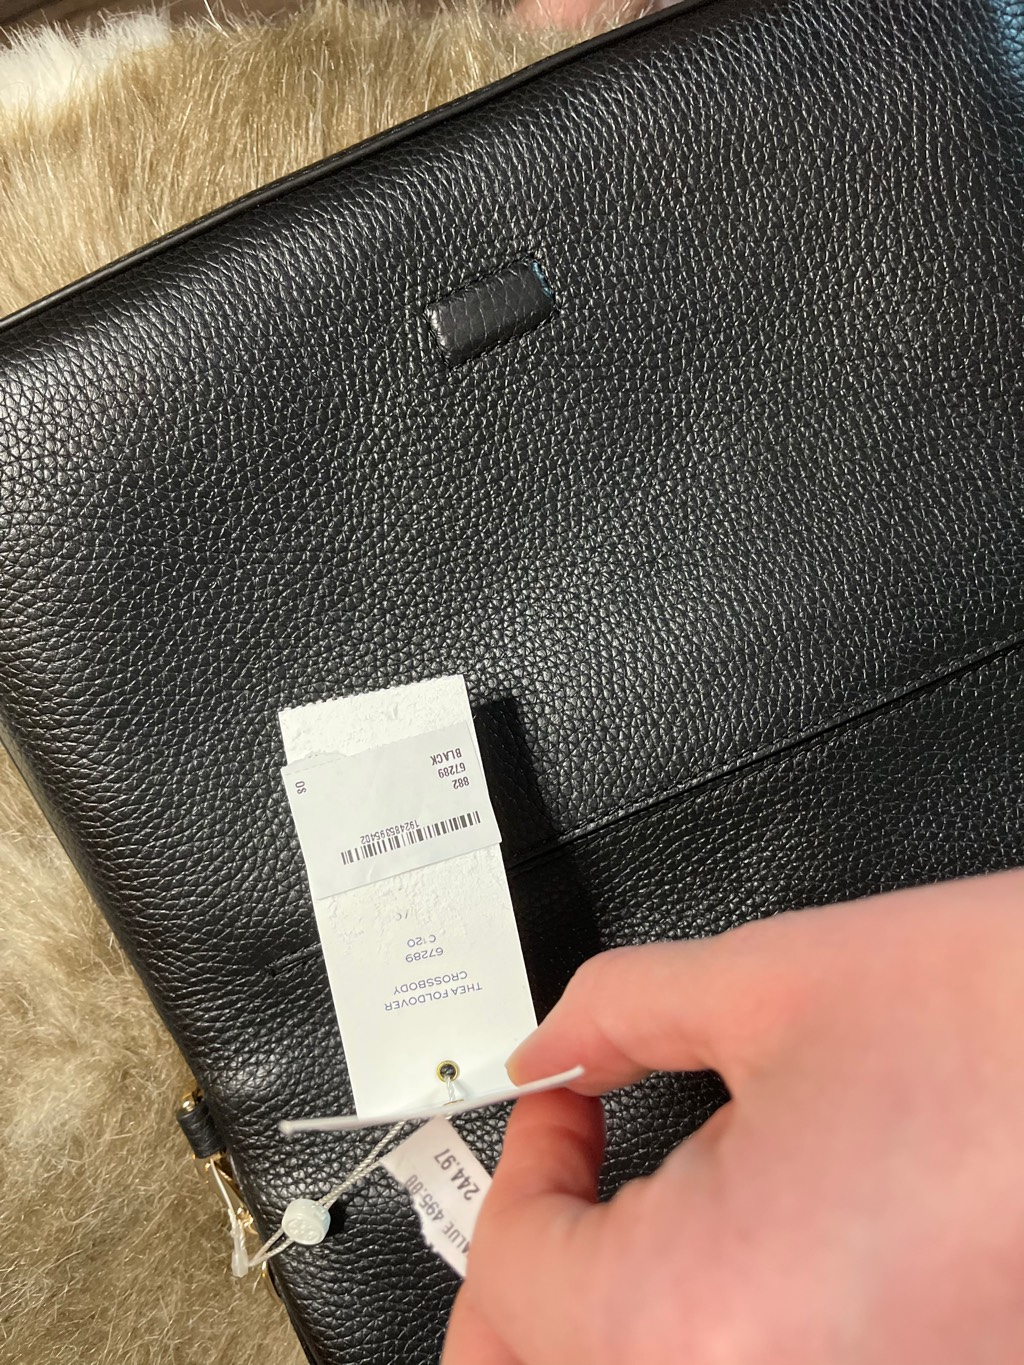 Tory Burch Thea Bag - NWT Other3